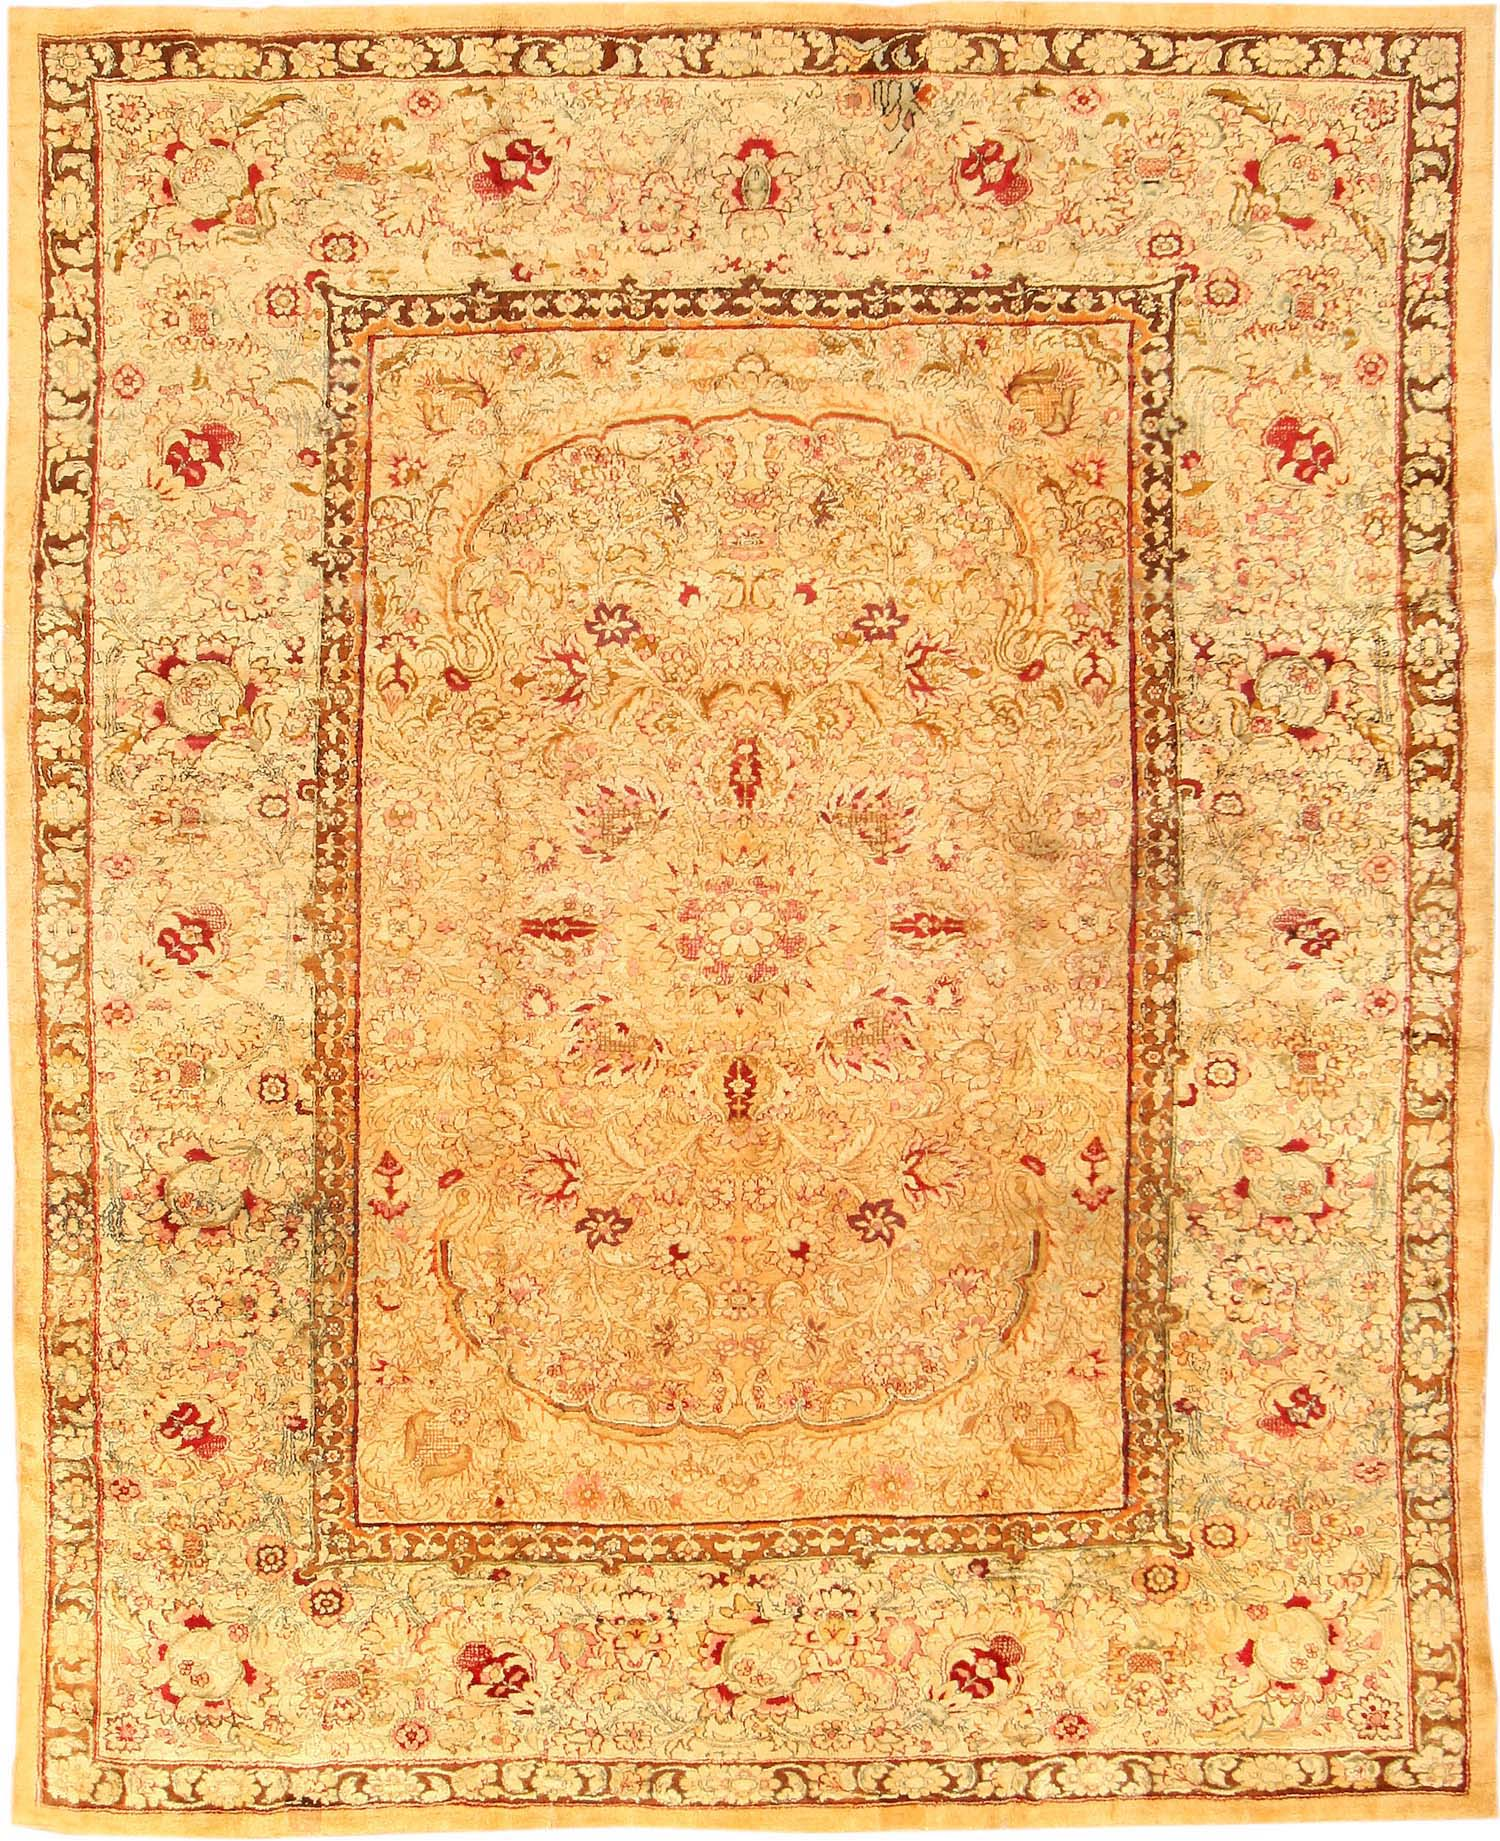 Arts And Crafts Rugs With Exciting Indian Agra Rug Design: Antique Agra Oriental Rugs 40423 For Sale